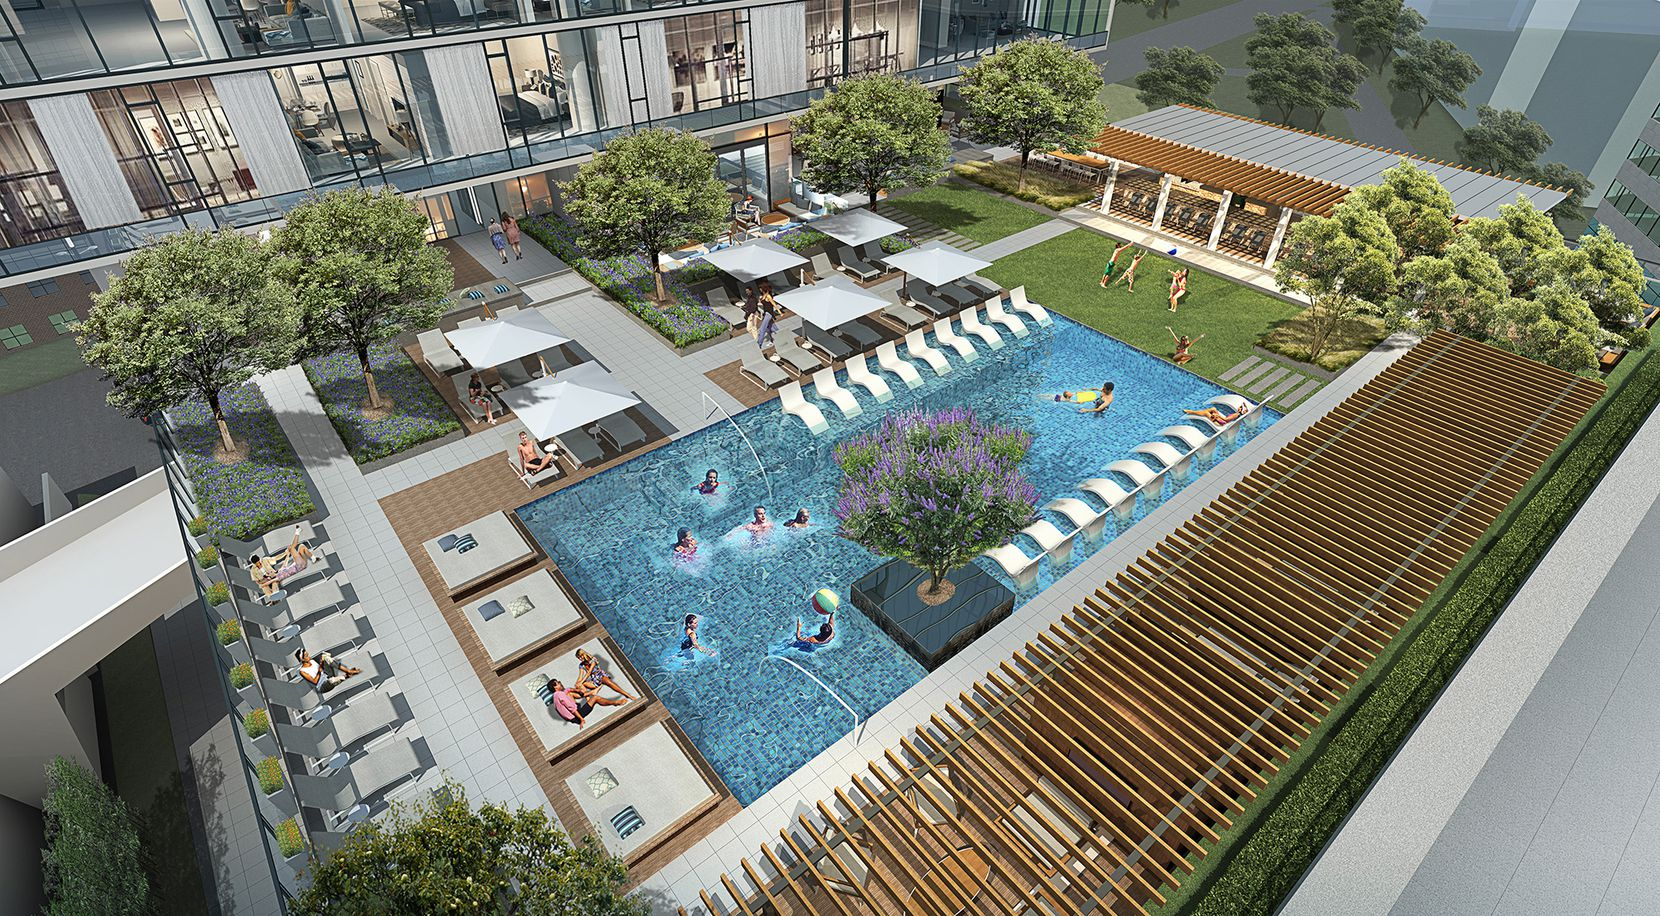 The Victor will have a pool and outdoor lounge area for tenants on the ninth floor.